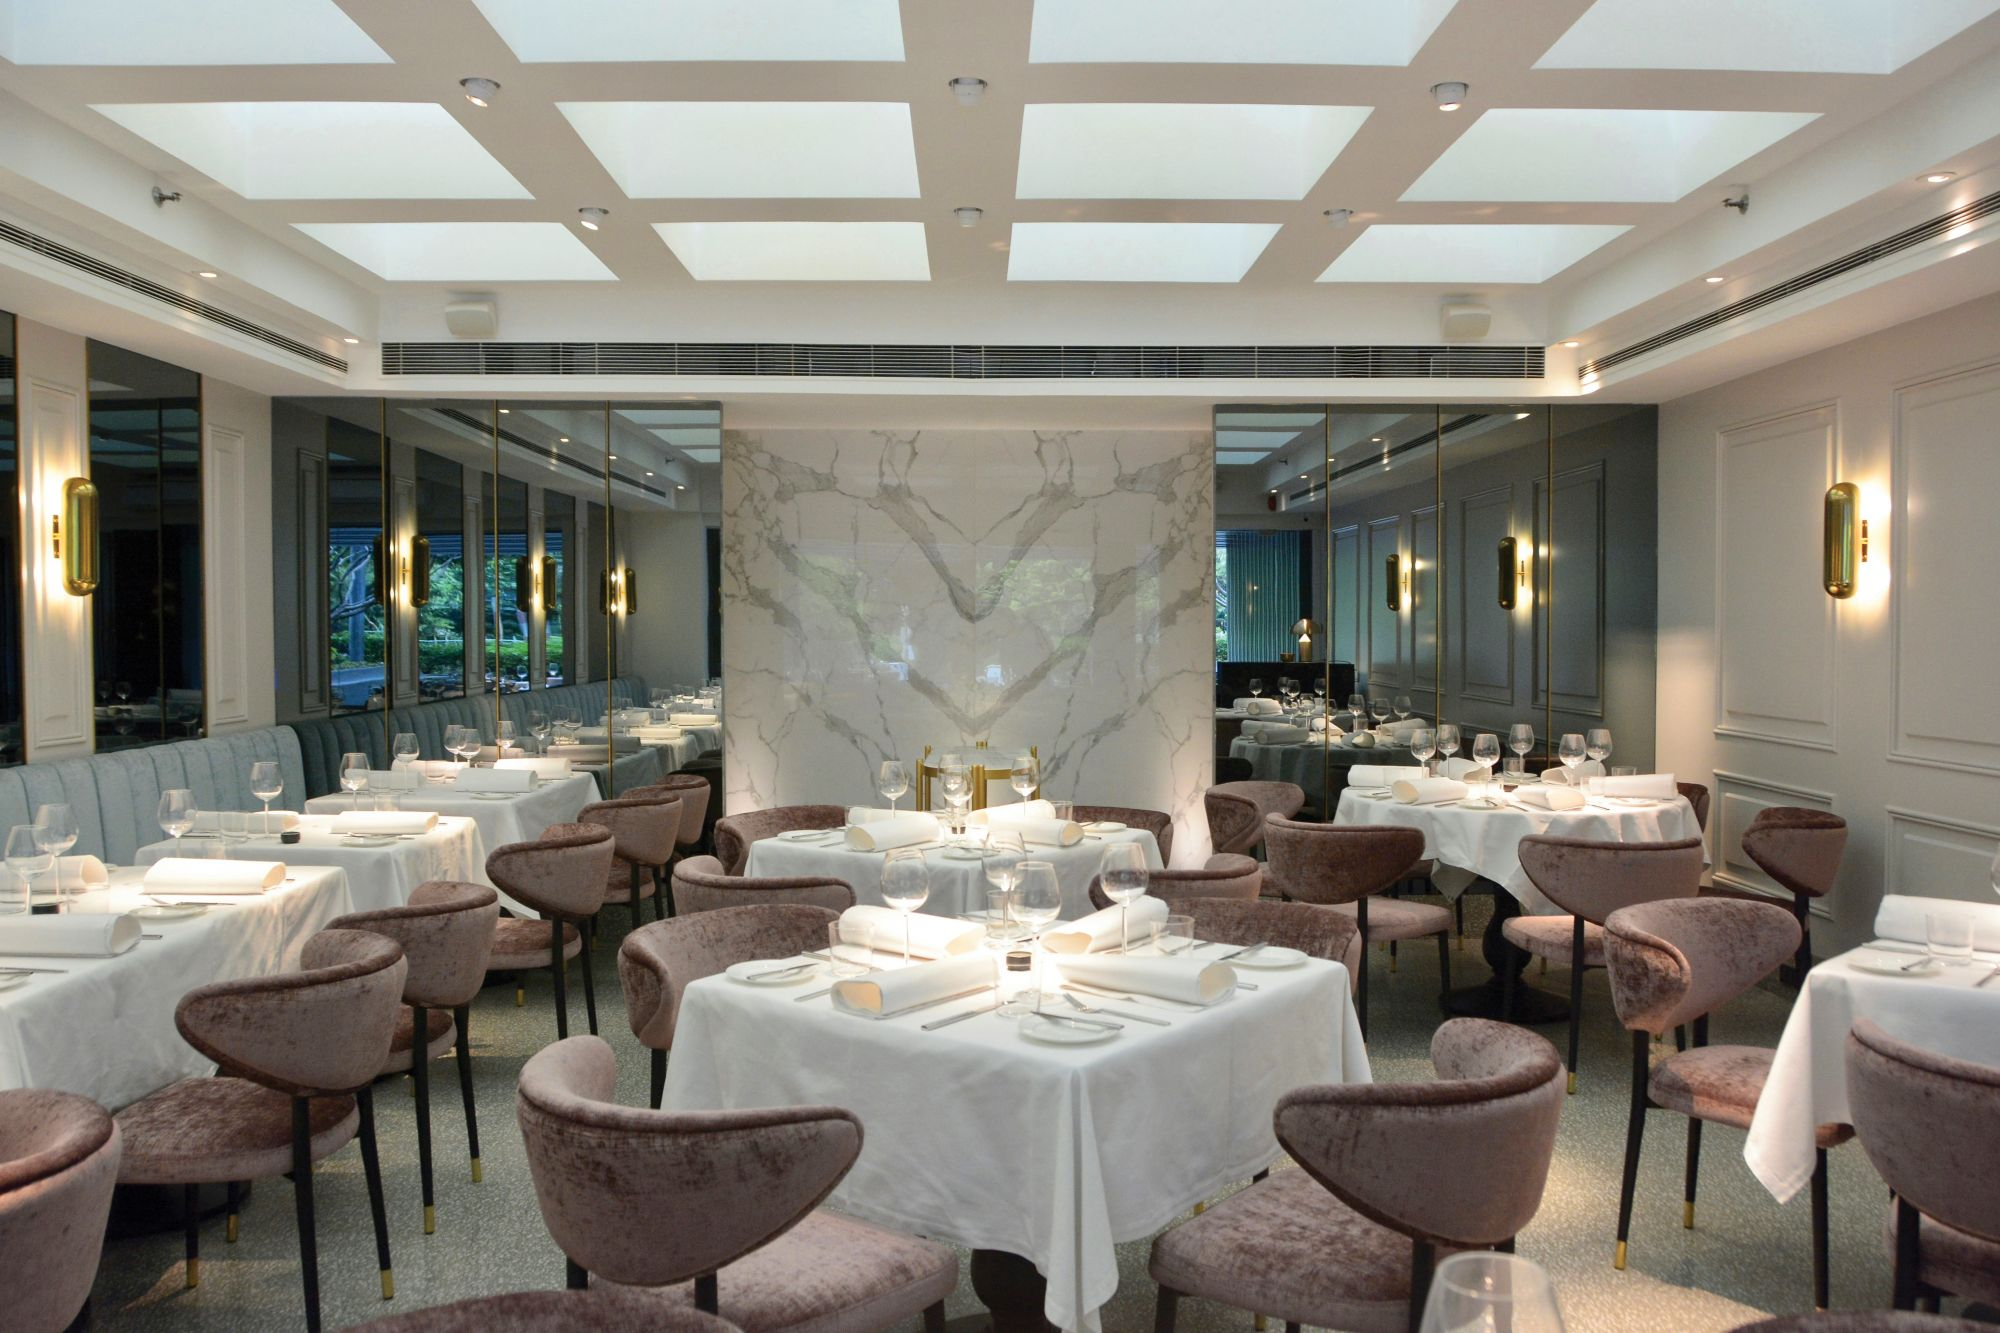 Dining by Design: 4 Restaurants With Commendable Interiors